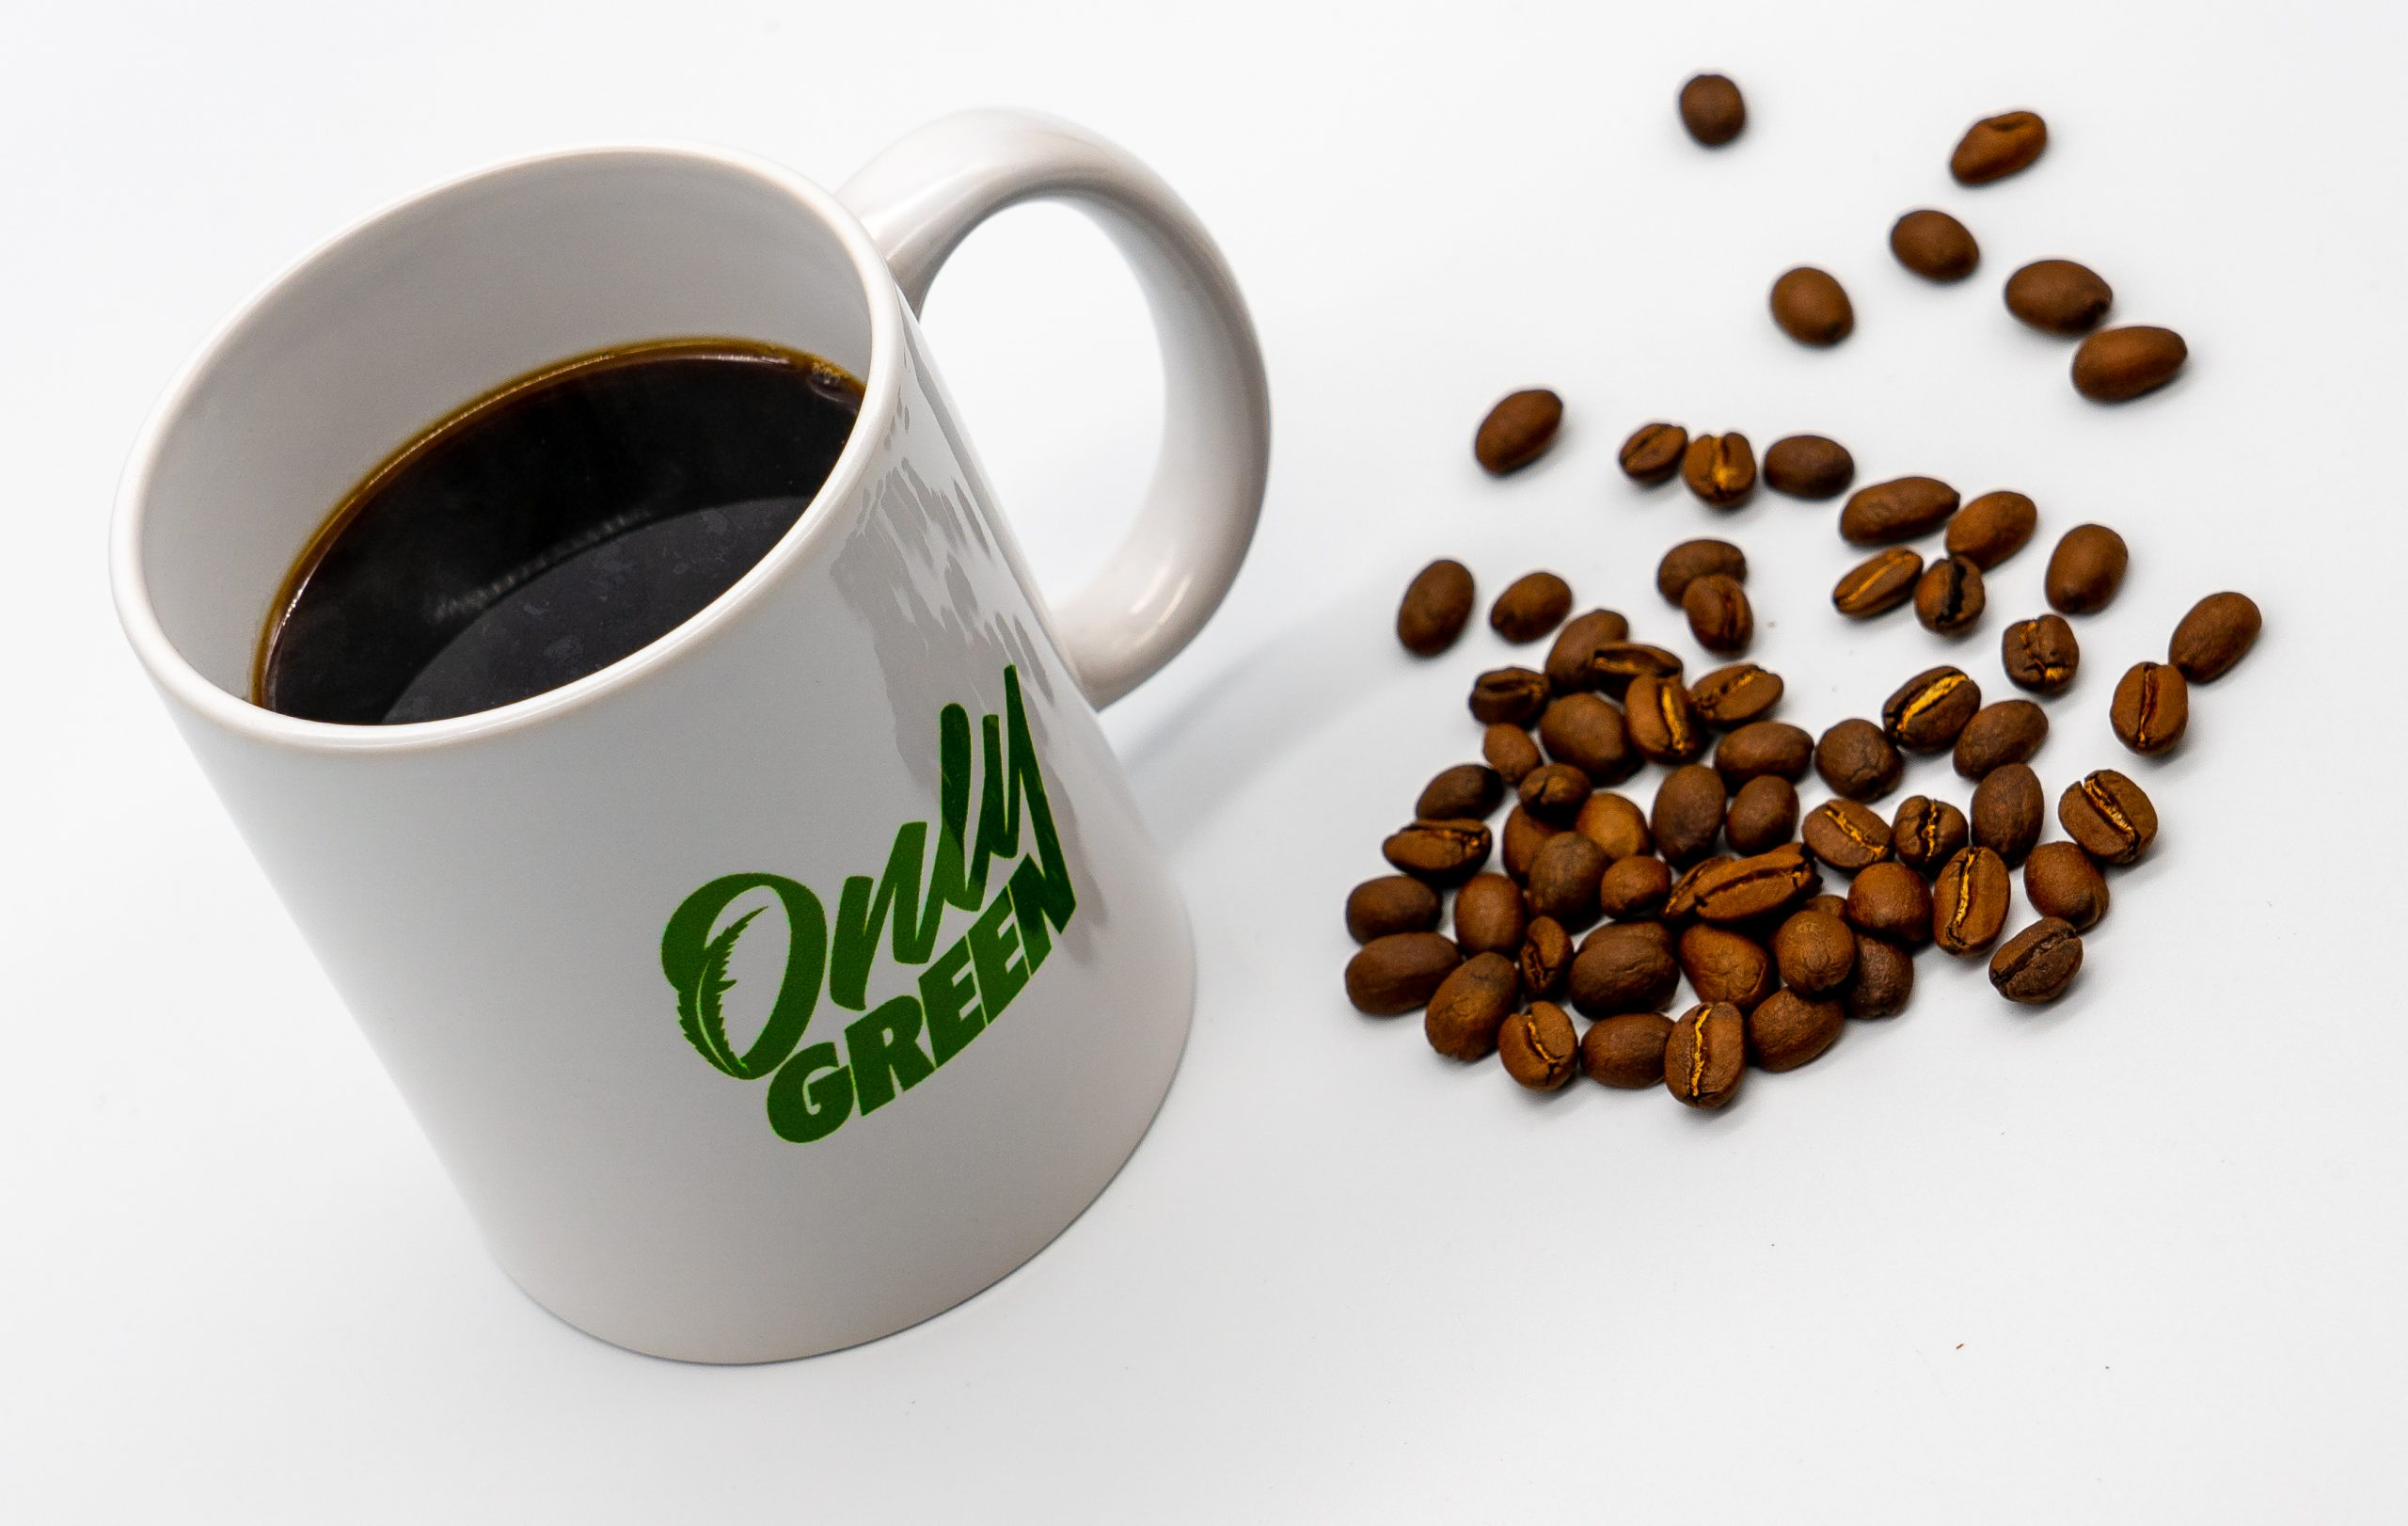 Coffee Cup With CBD Coffee and Coffee Beans